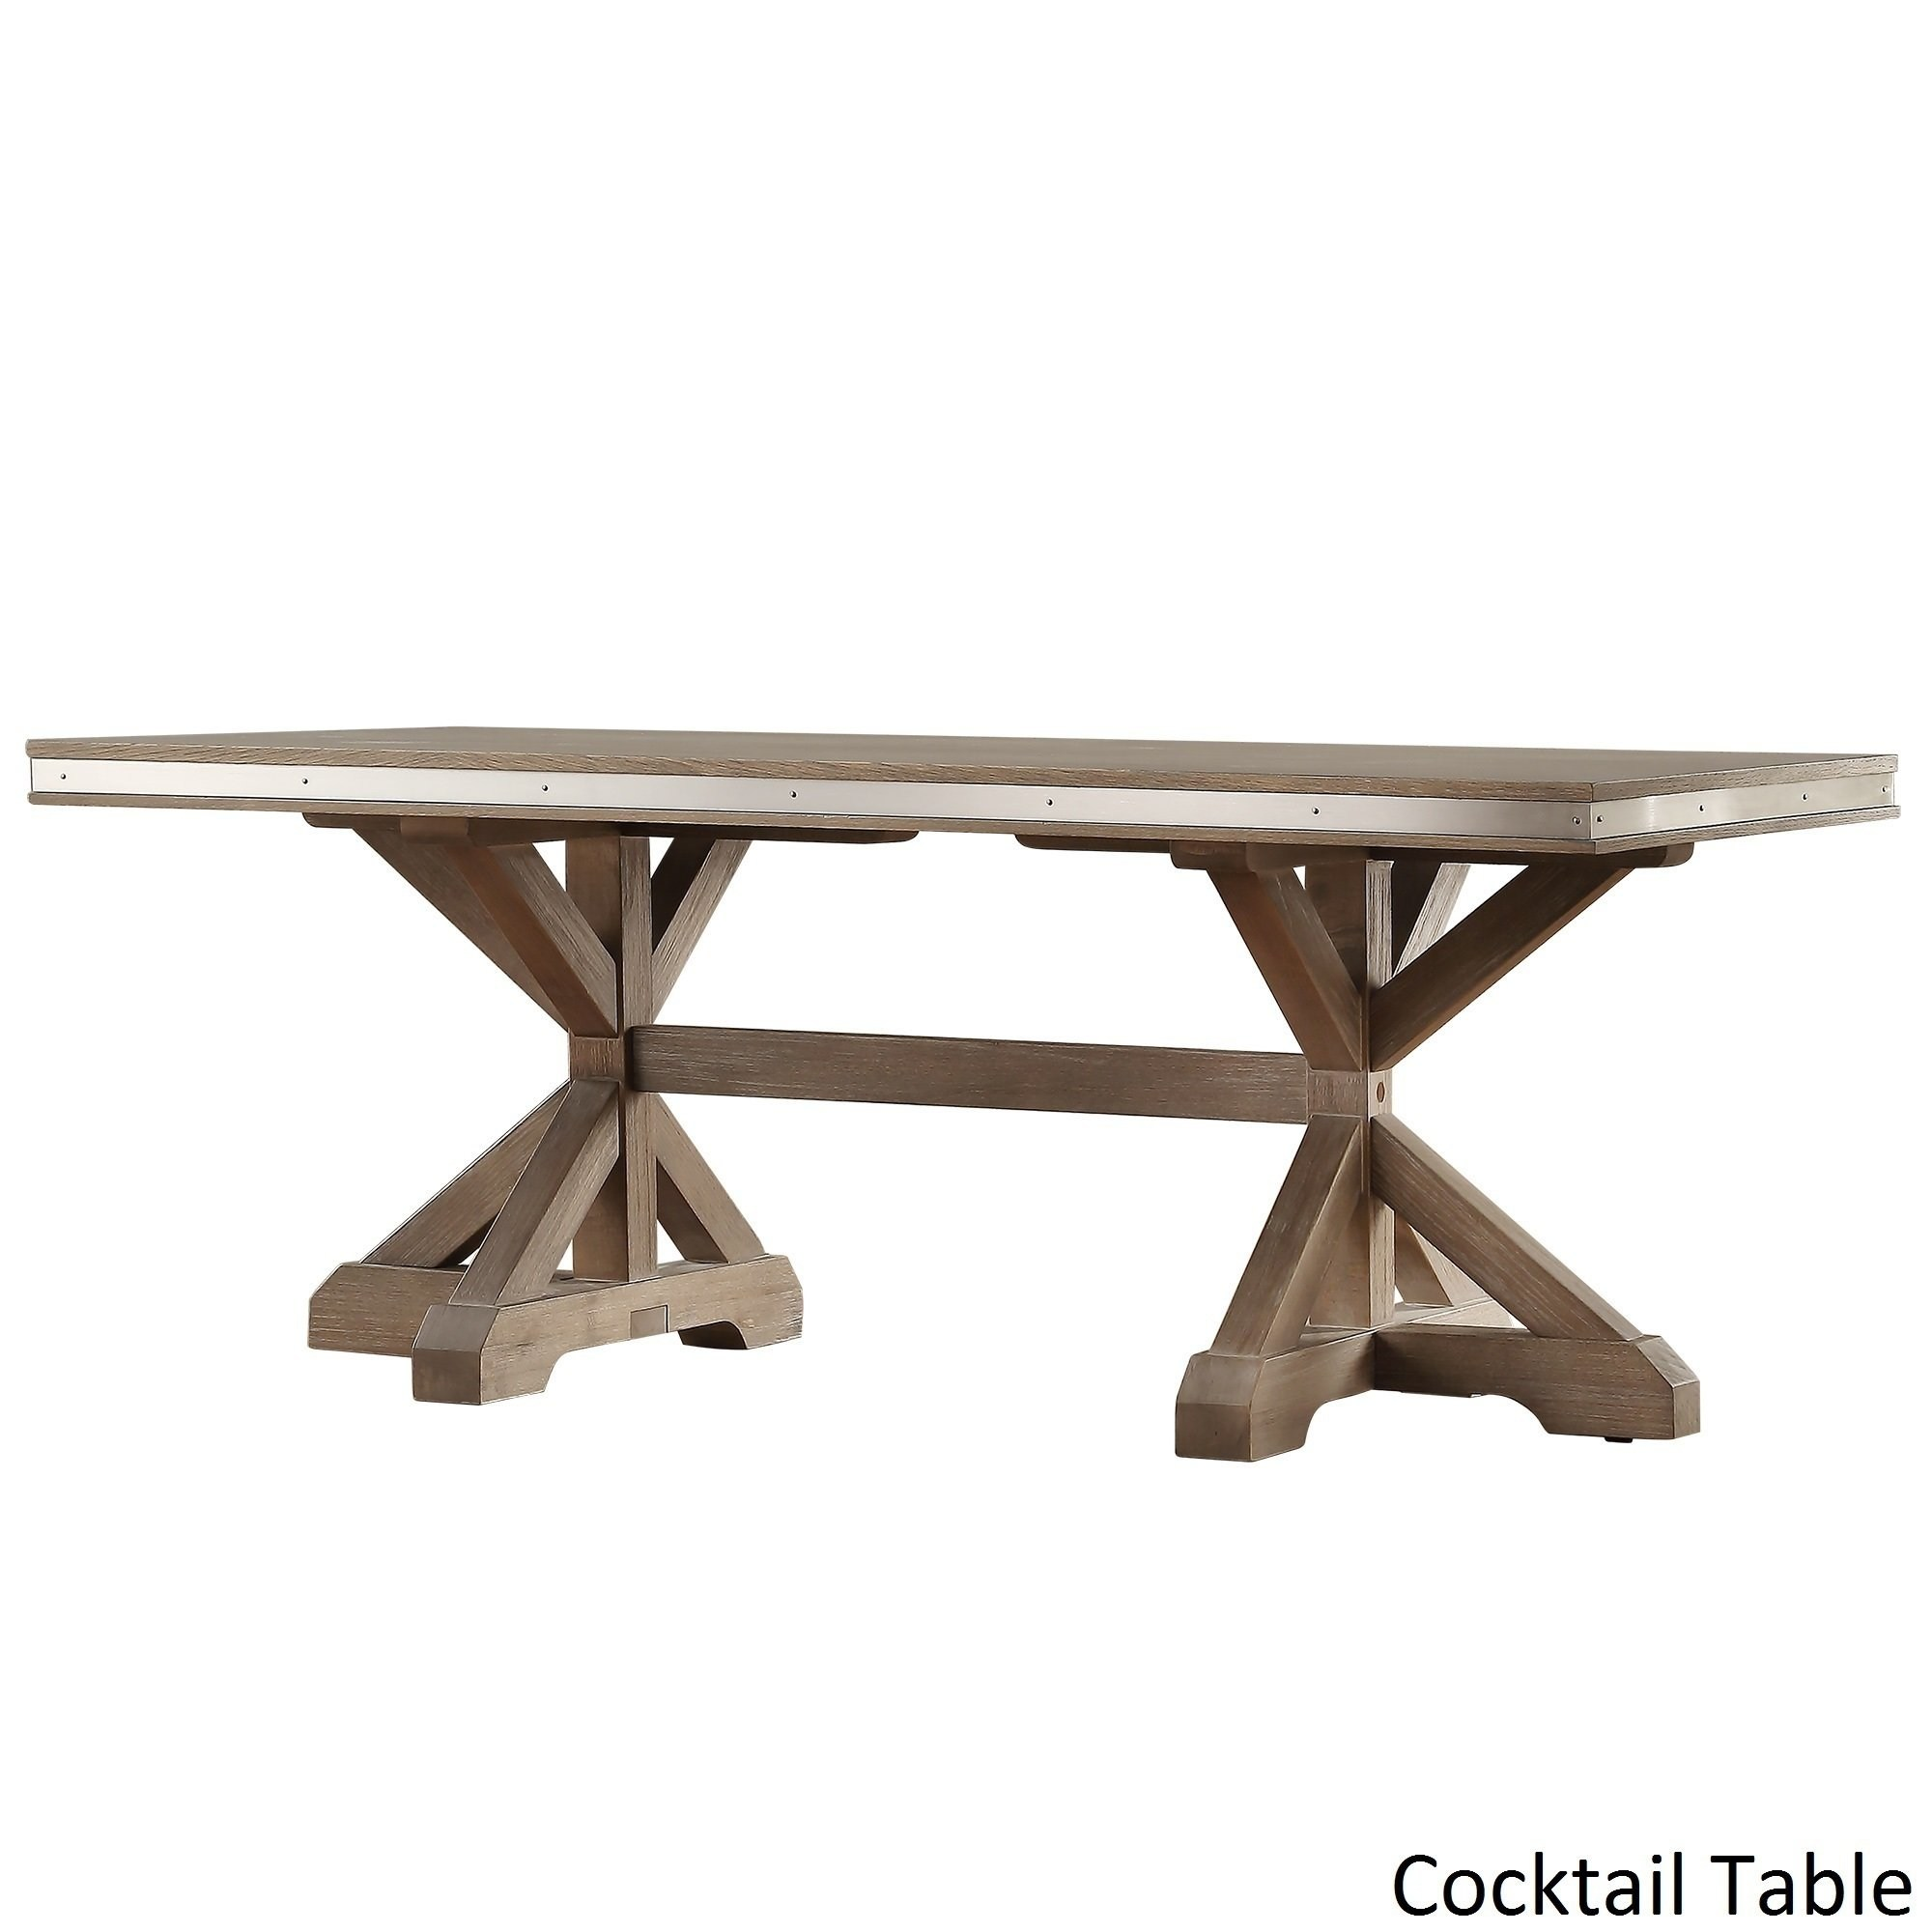 trestle table page manufacturers abbott rustic steel strap oak accent tables inspire artisan junior free shipping today round dining room seats hire melbourne metal bench legs